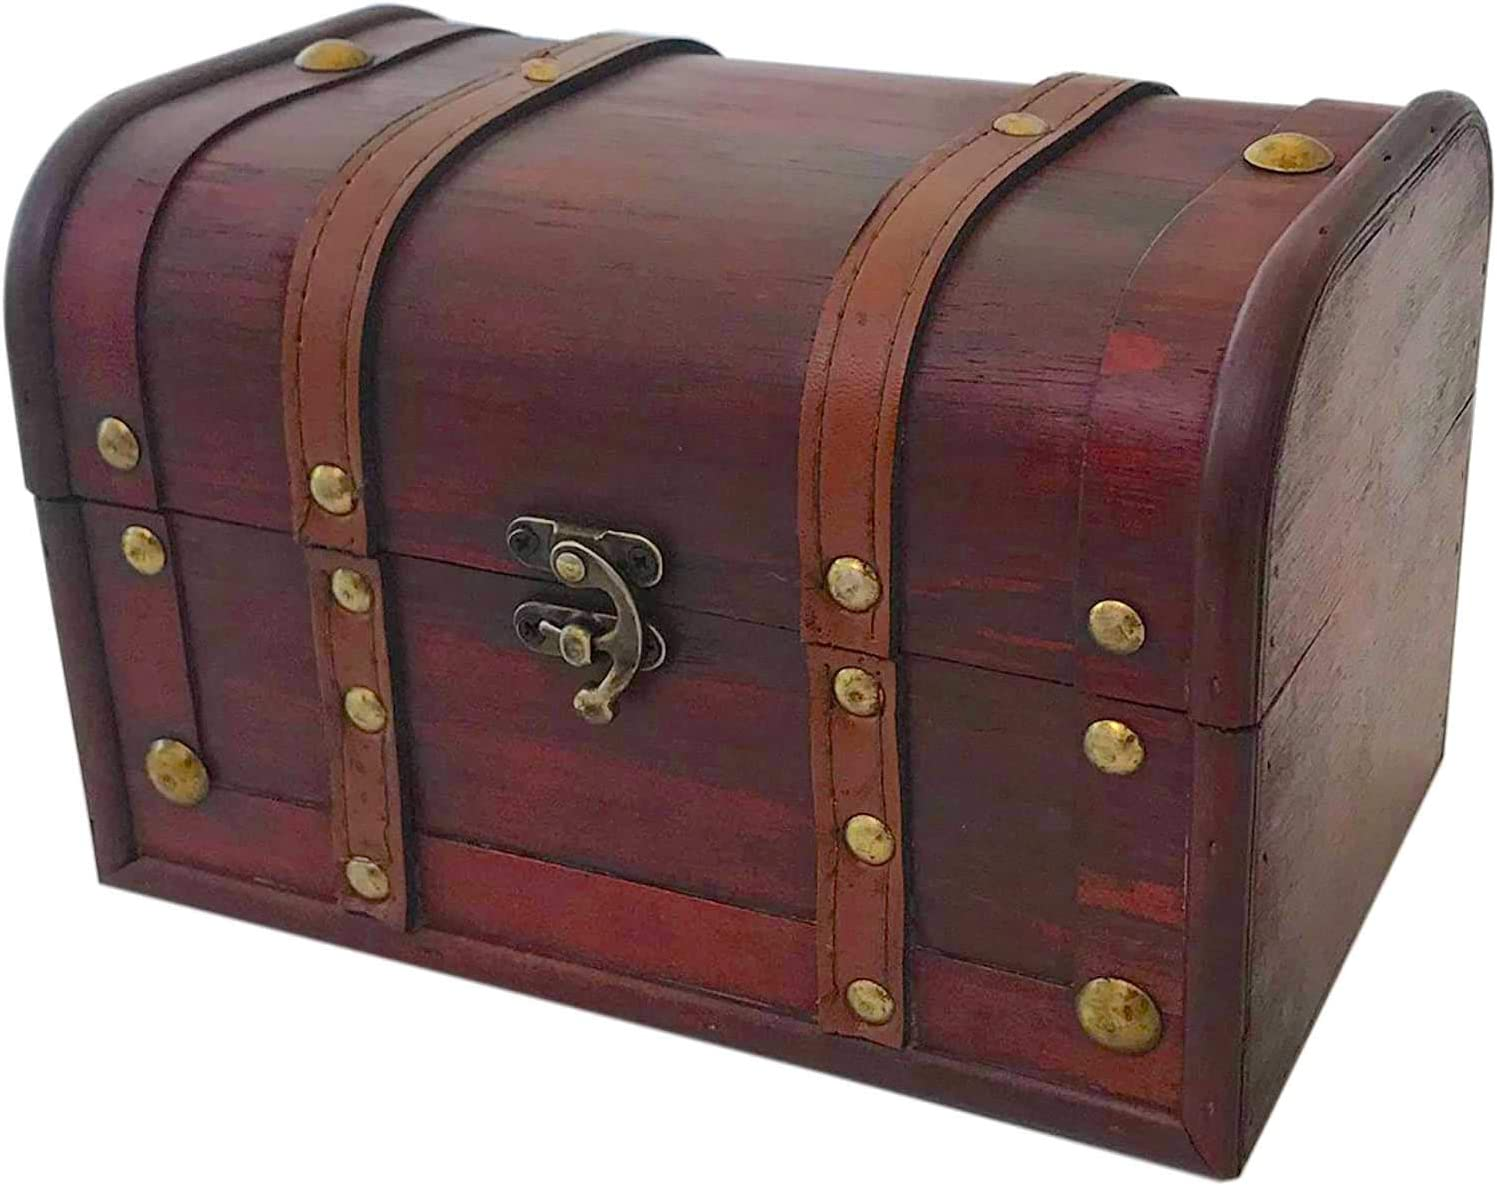 Wood and Leather Treasure Chest Box Decorative Storage Chest Box with Lock | Handcrafted Decorative Boxes with Lids for Home Decor | Wood Box with Lid | Small Chest | Wooden Stash Box